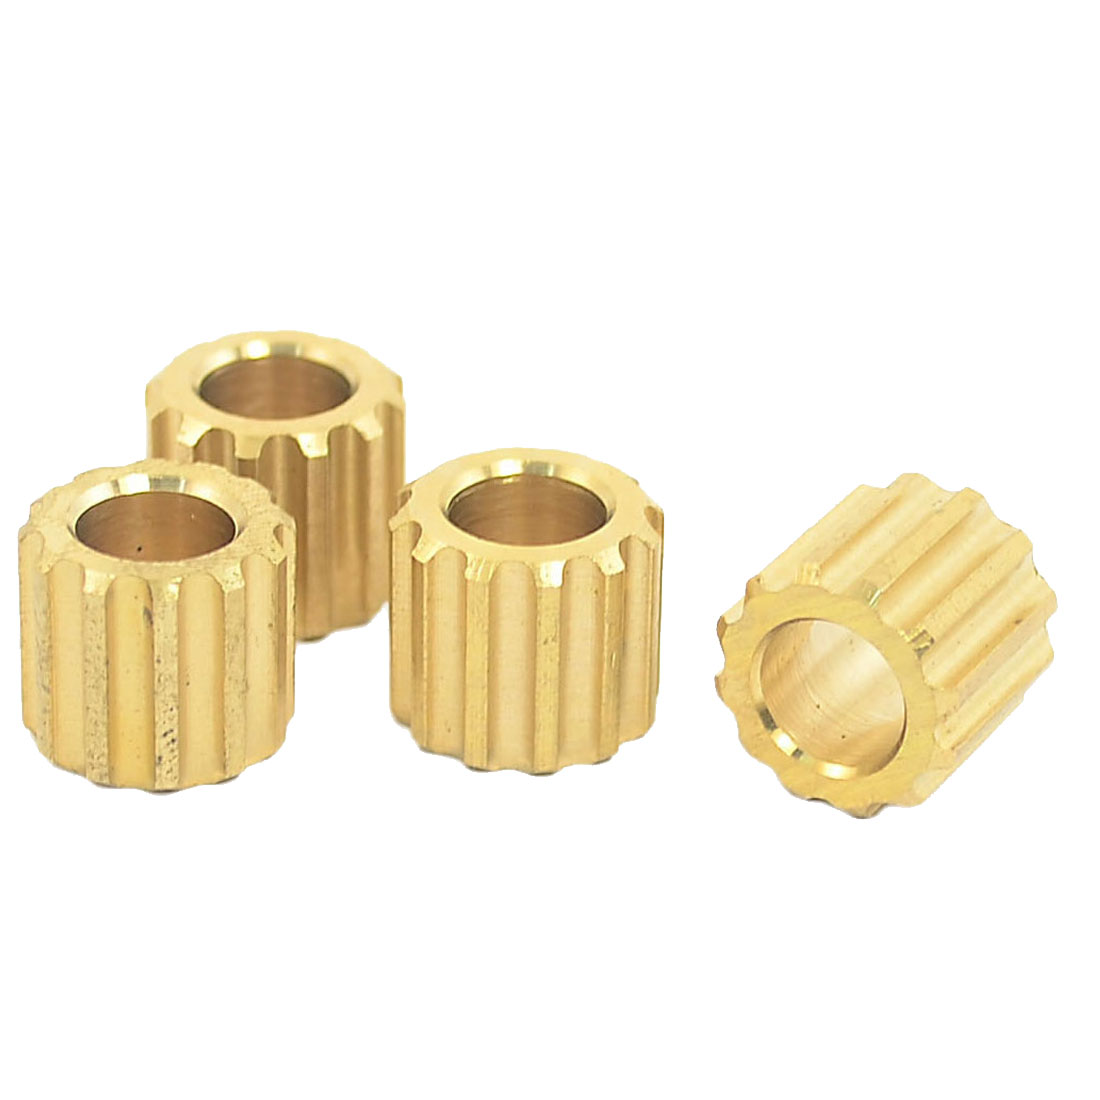 7mm Pore Dia 12 Tooth Motor Shaft Gear DIY Toys Parts Brass Tone 4PCS